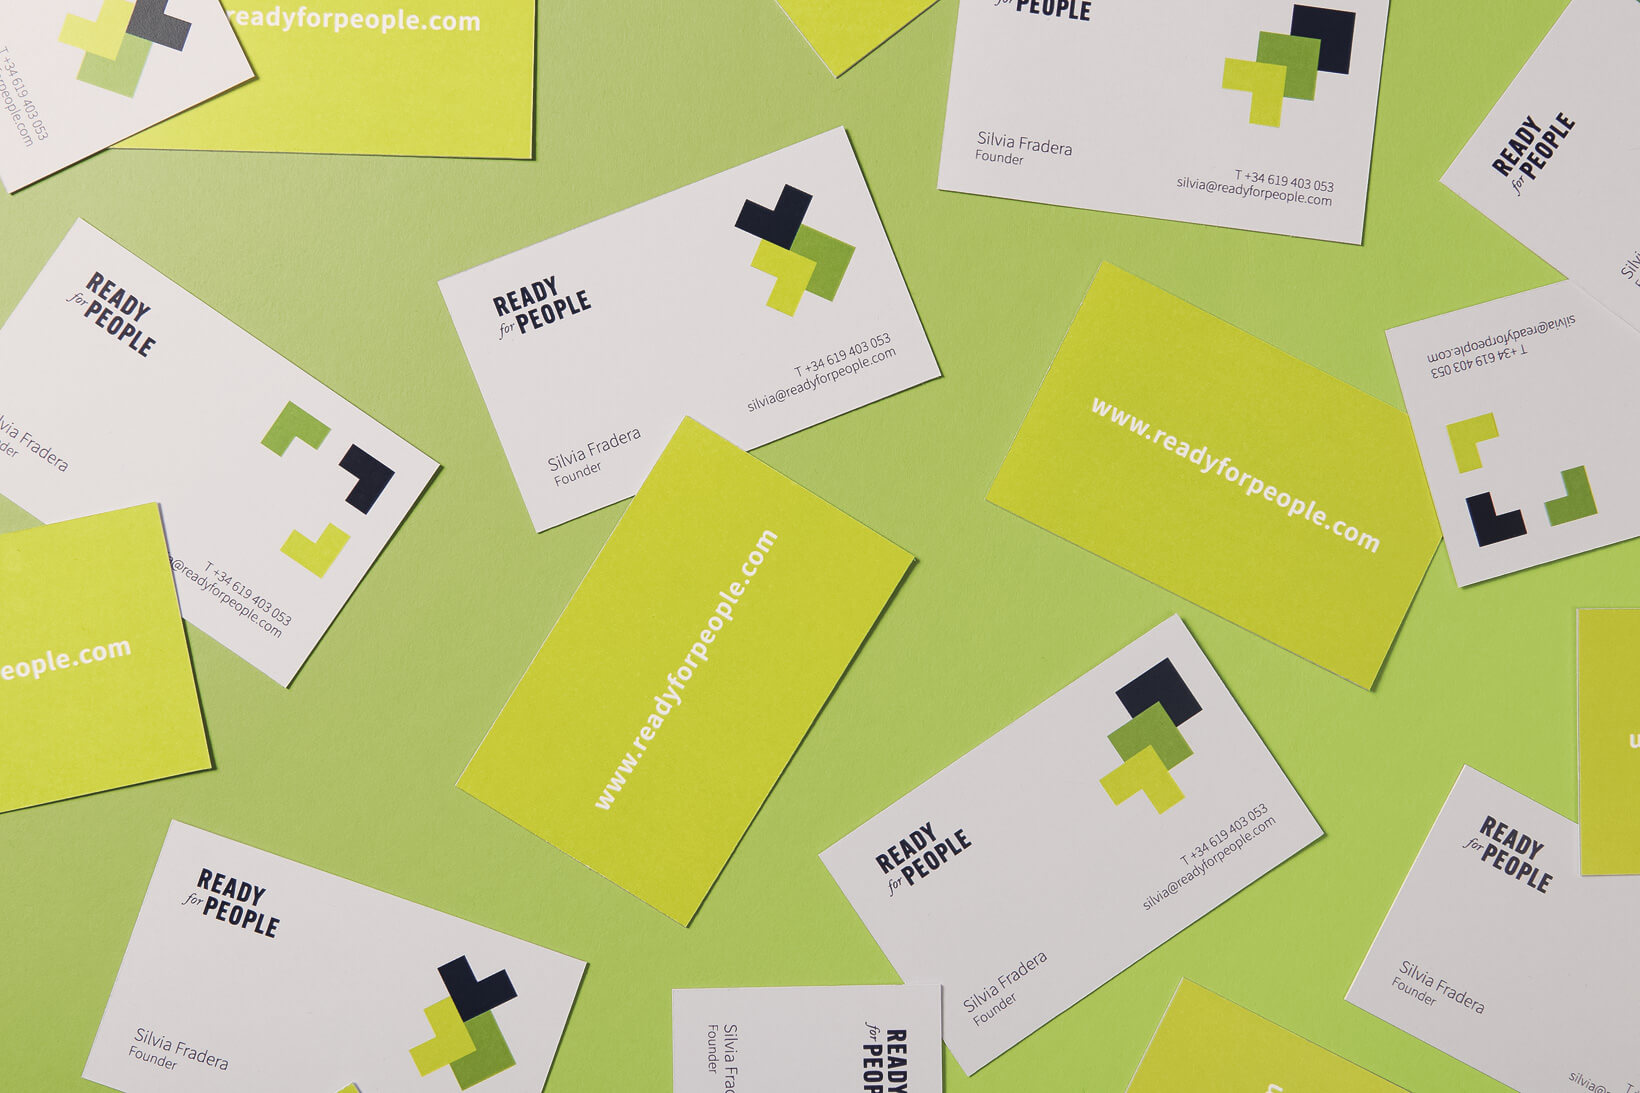 Logotype and stationery design for Ready for People